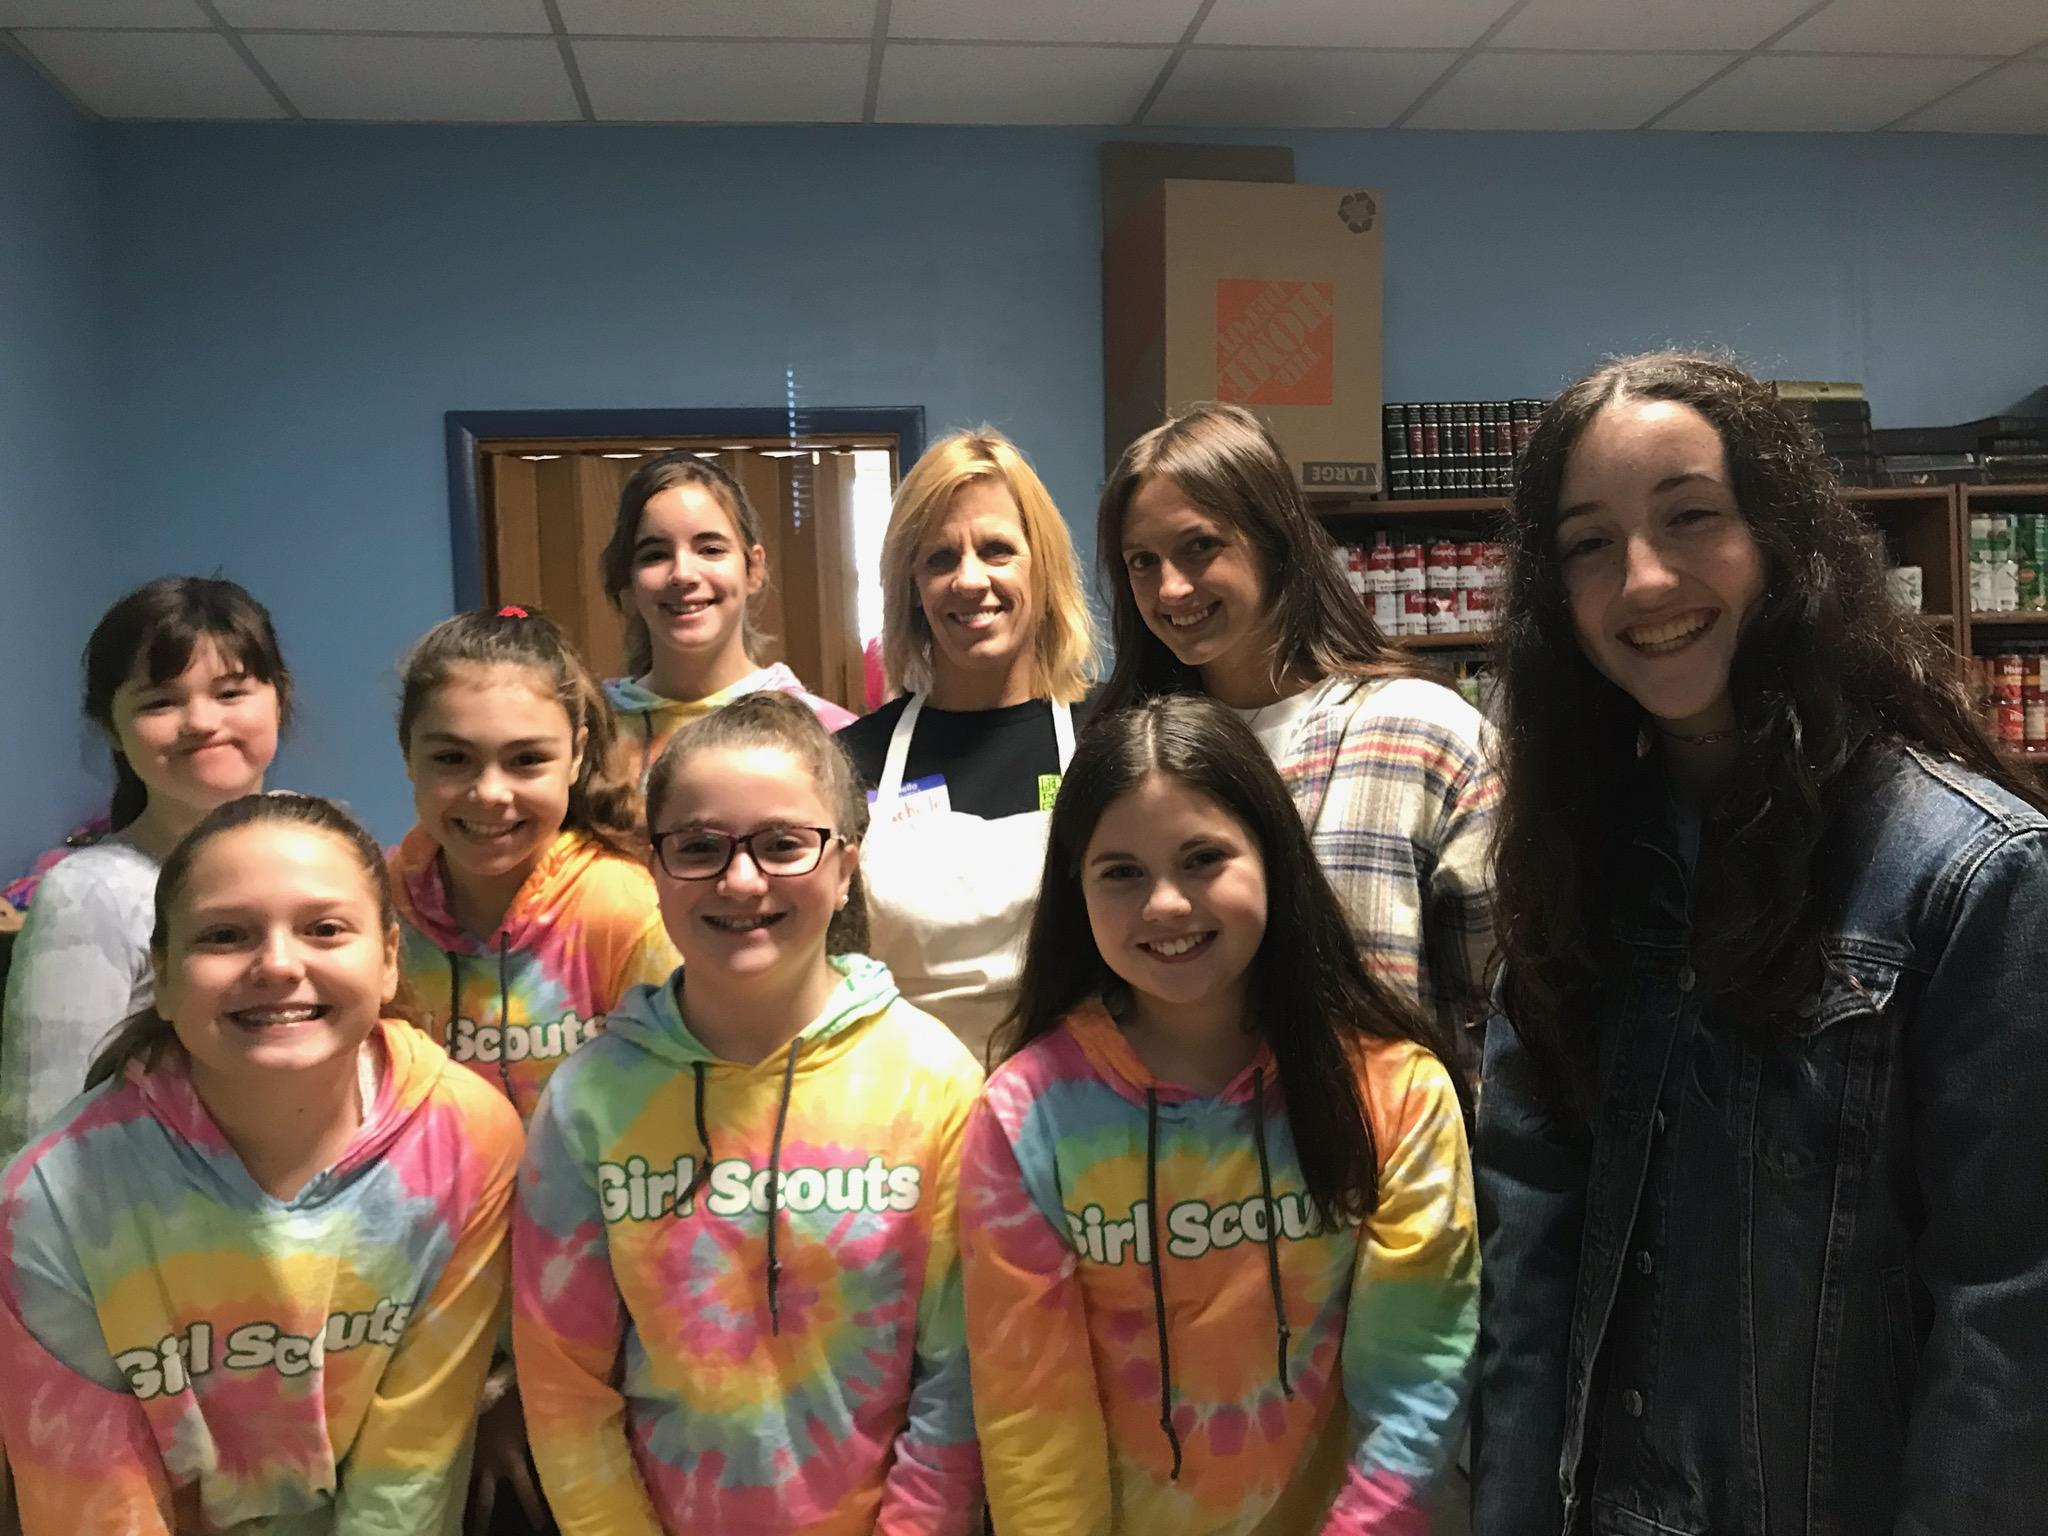 CBH Care, Oradell Girl Scout Troop Donate 15 Bags of Clothing at 30th Annual Caring Community Dinner